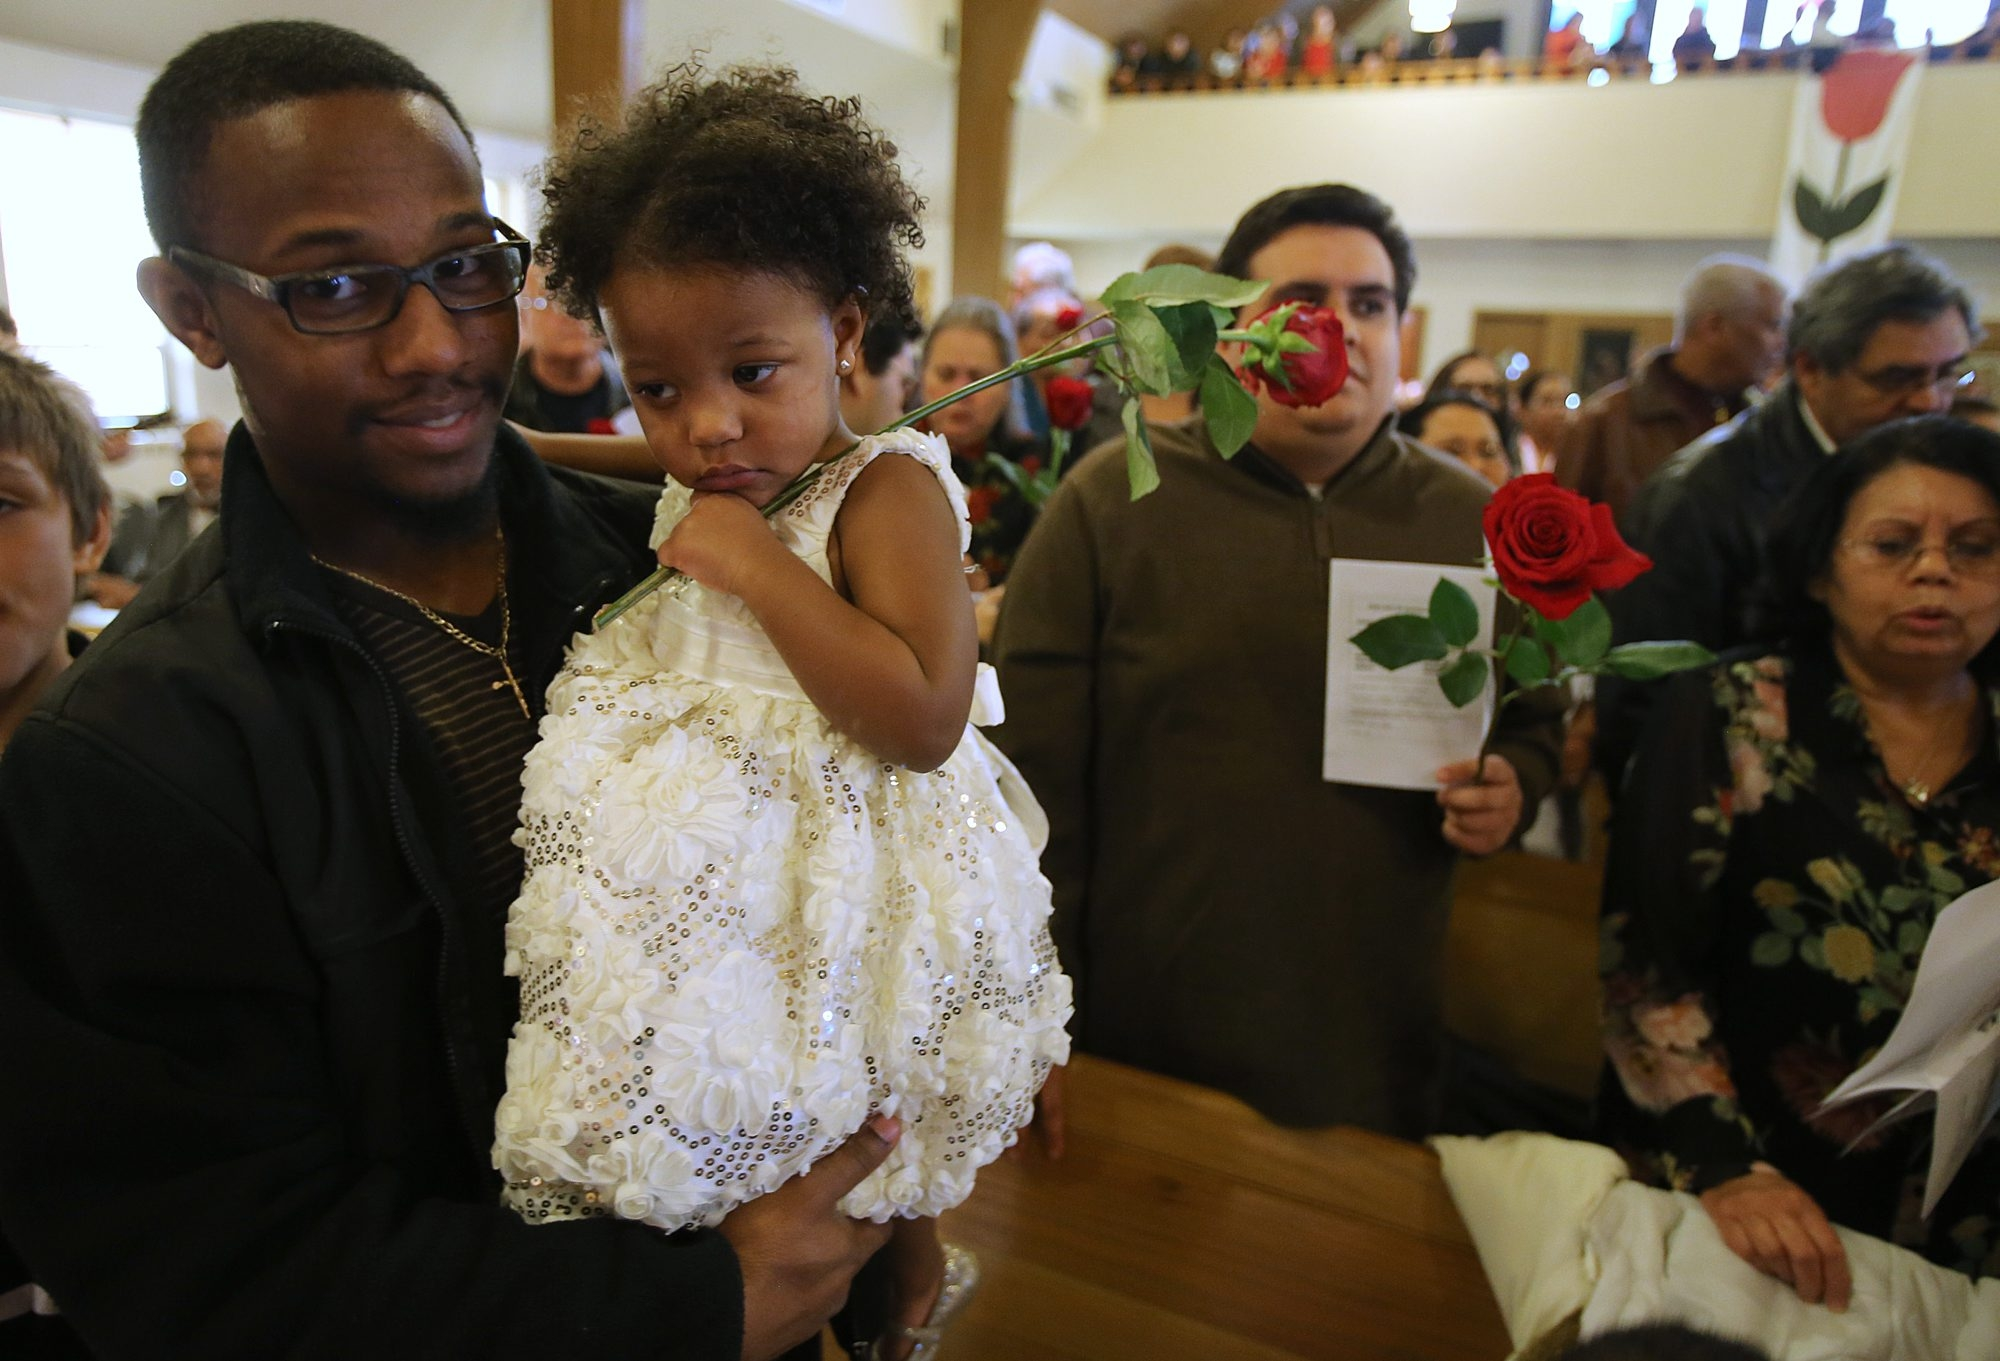 Daniel Soto holds his daughter Mariso, 2, at St. Anthony of Padua Catholic Church in Lackawanna, during the Feast of Our Lady of Guadalupe Mass on Sunday.